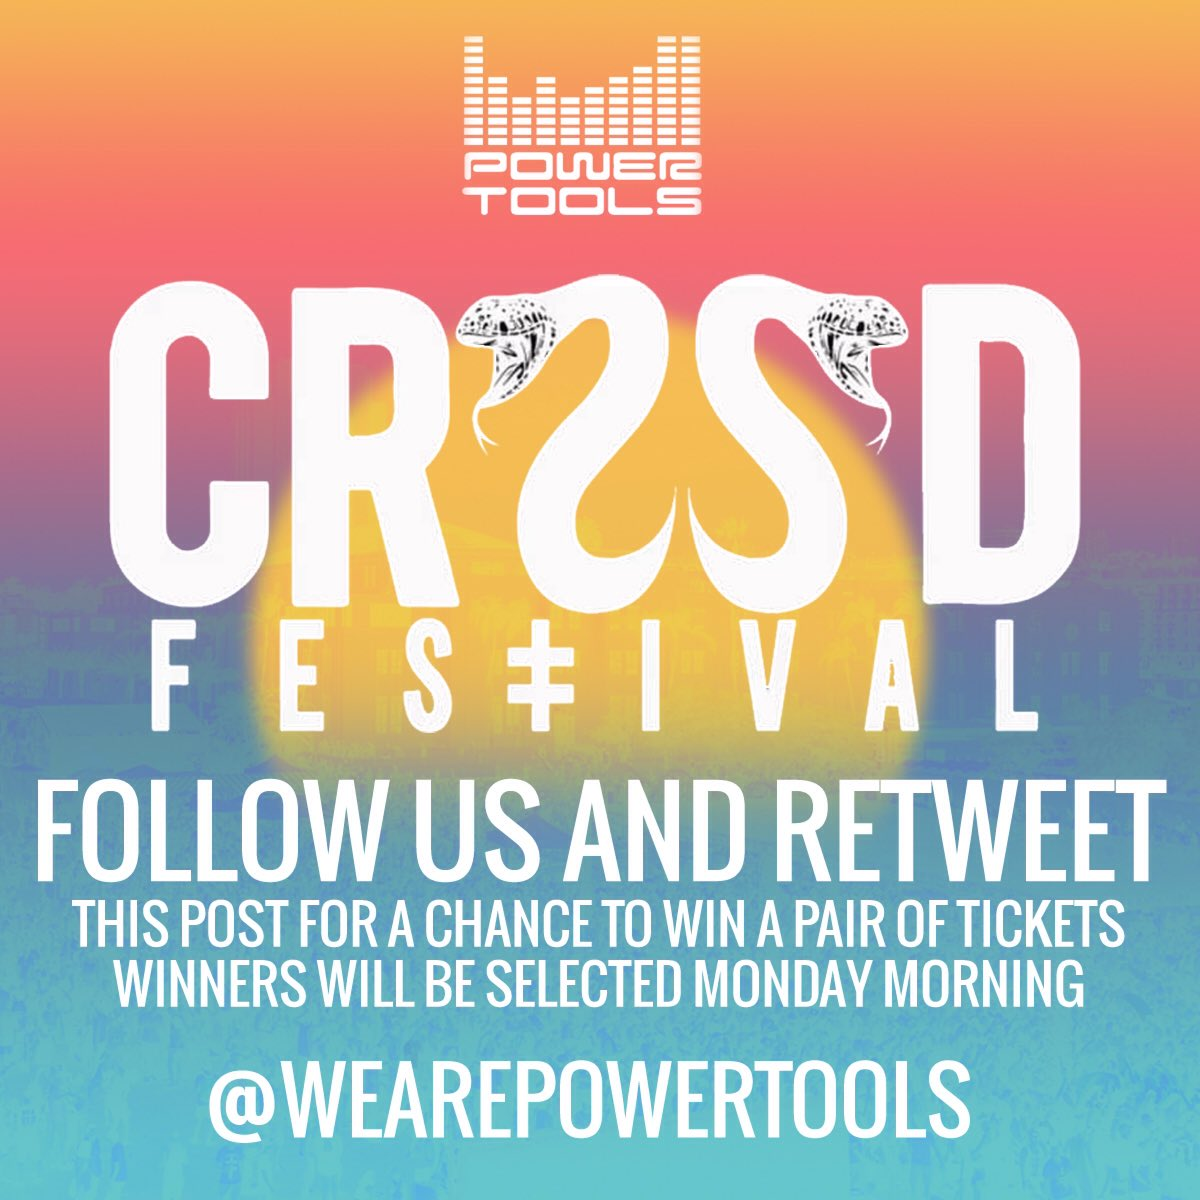 Who wants tickets to @crssdfest? Make sure you follow us and retweet!!! #wearepowertools#crssdfest #SanDiego https://t.co/UHqeNTKaD1